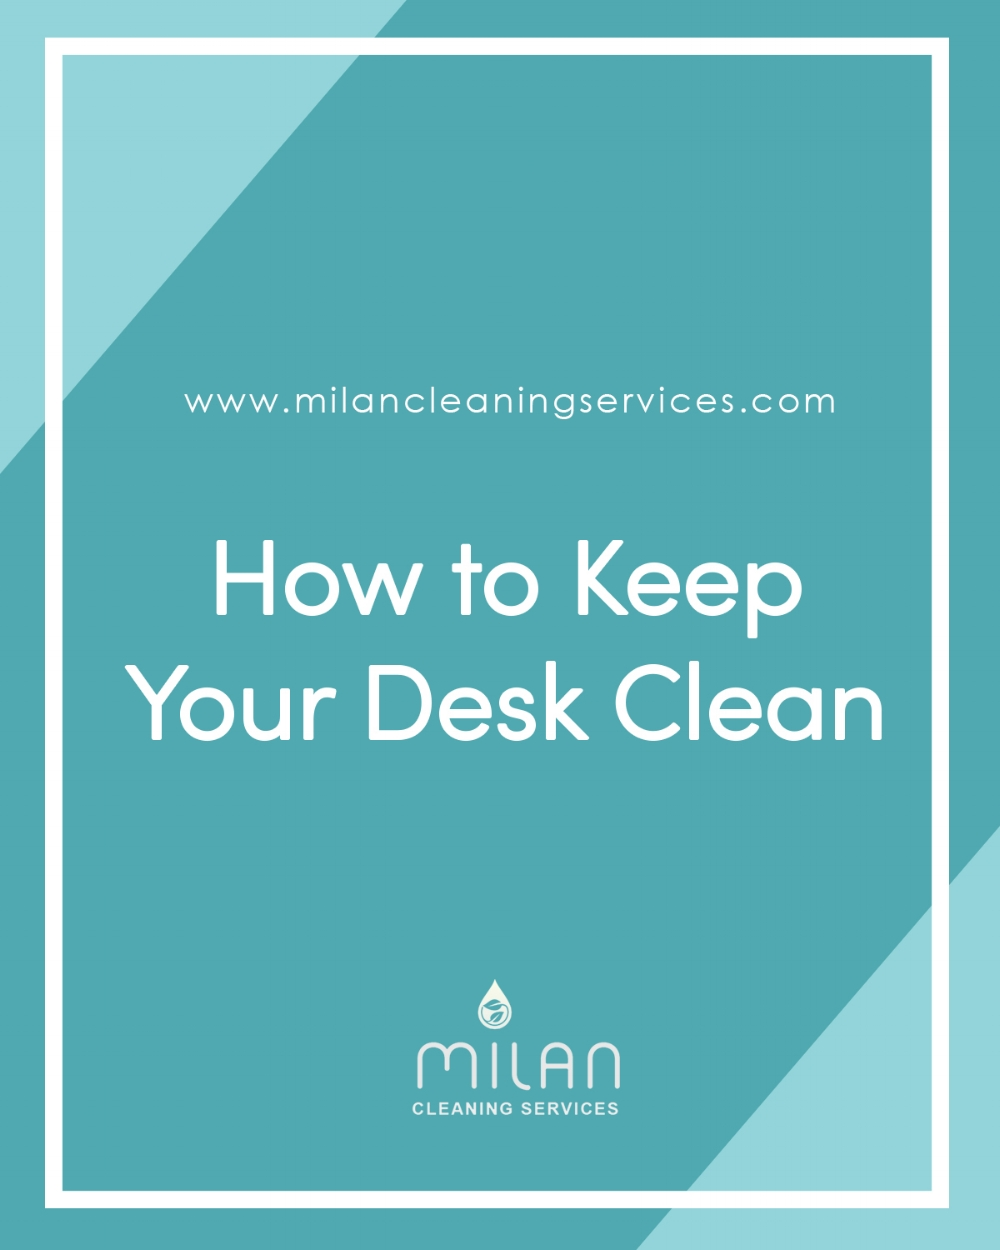 How-to-keep-your-desk-clean.jpg